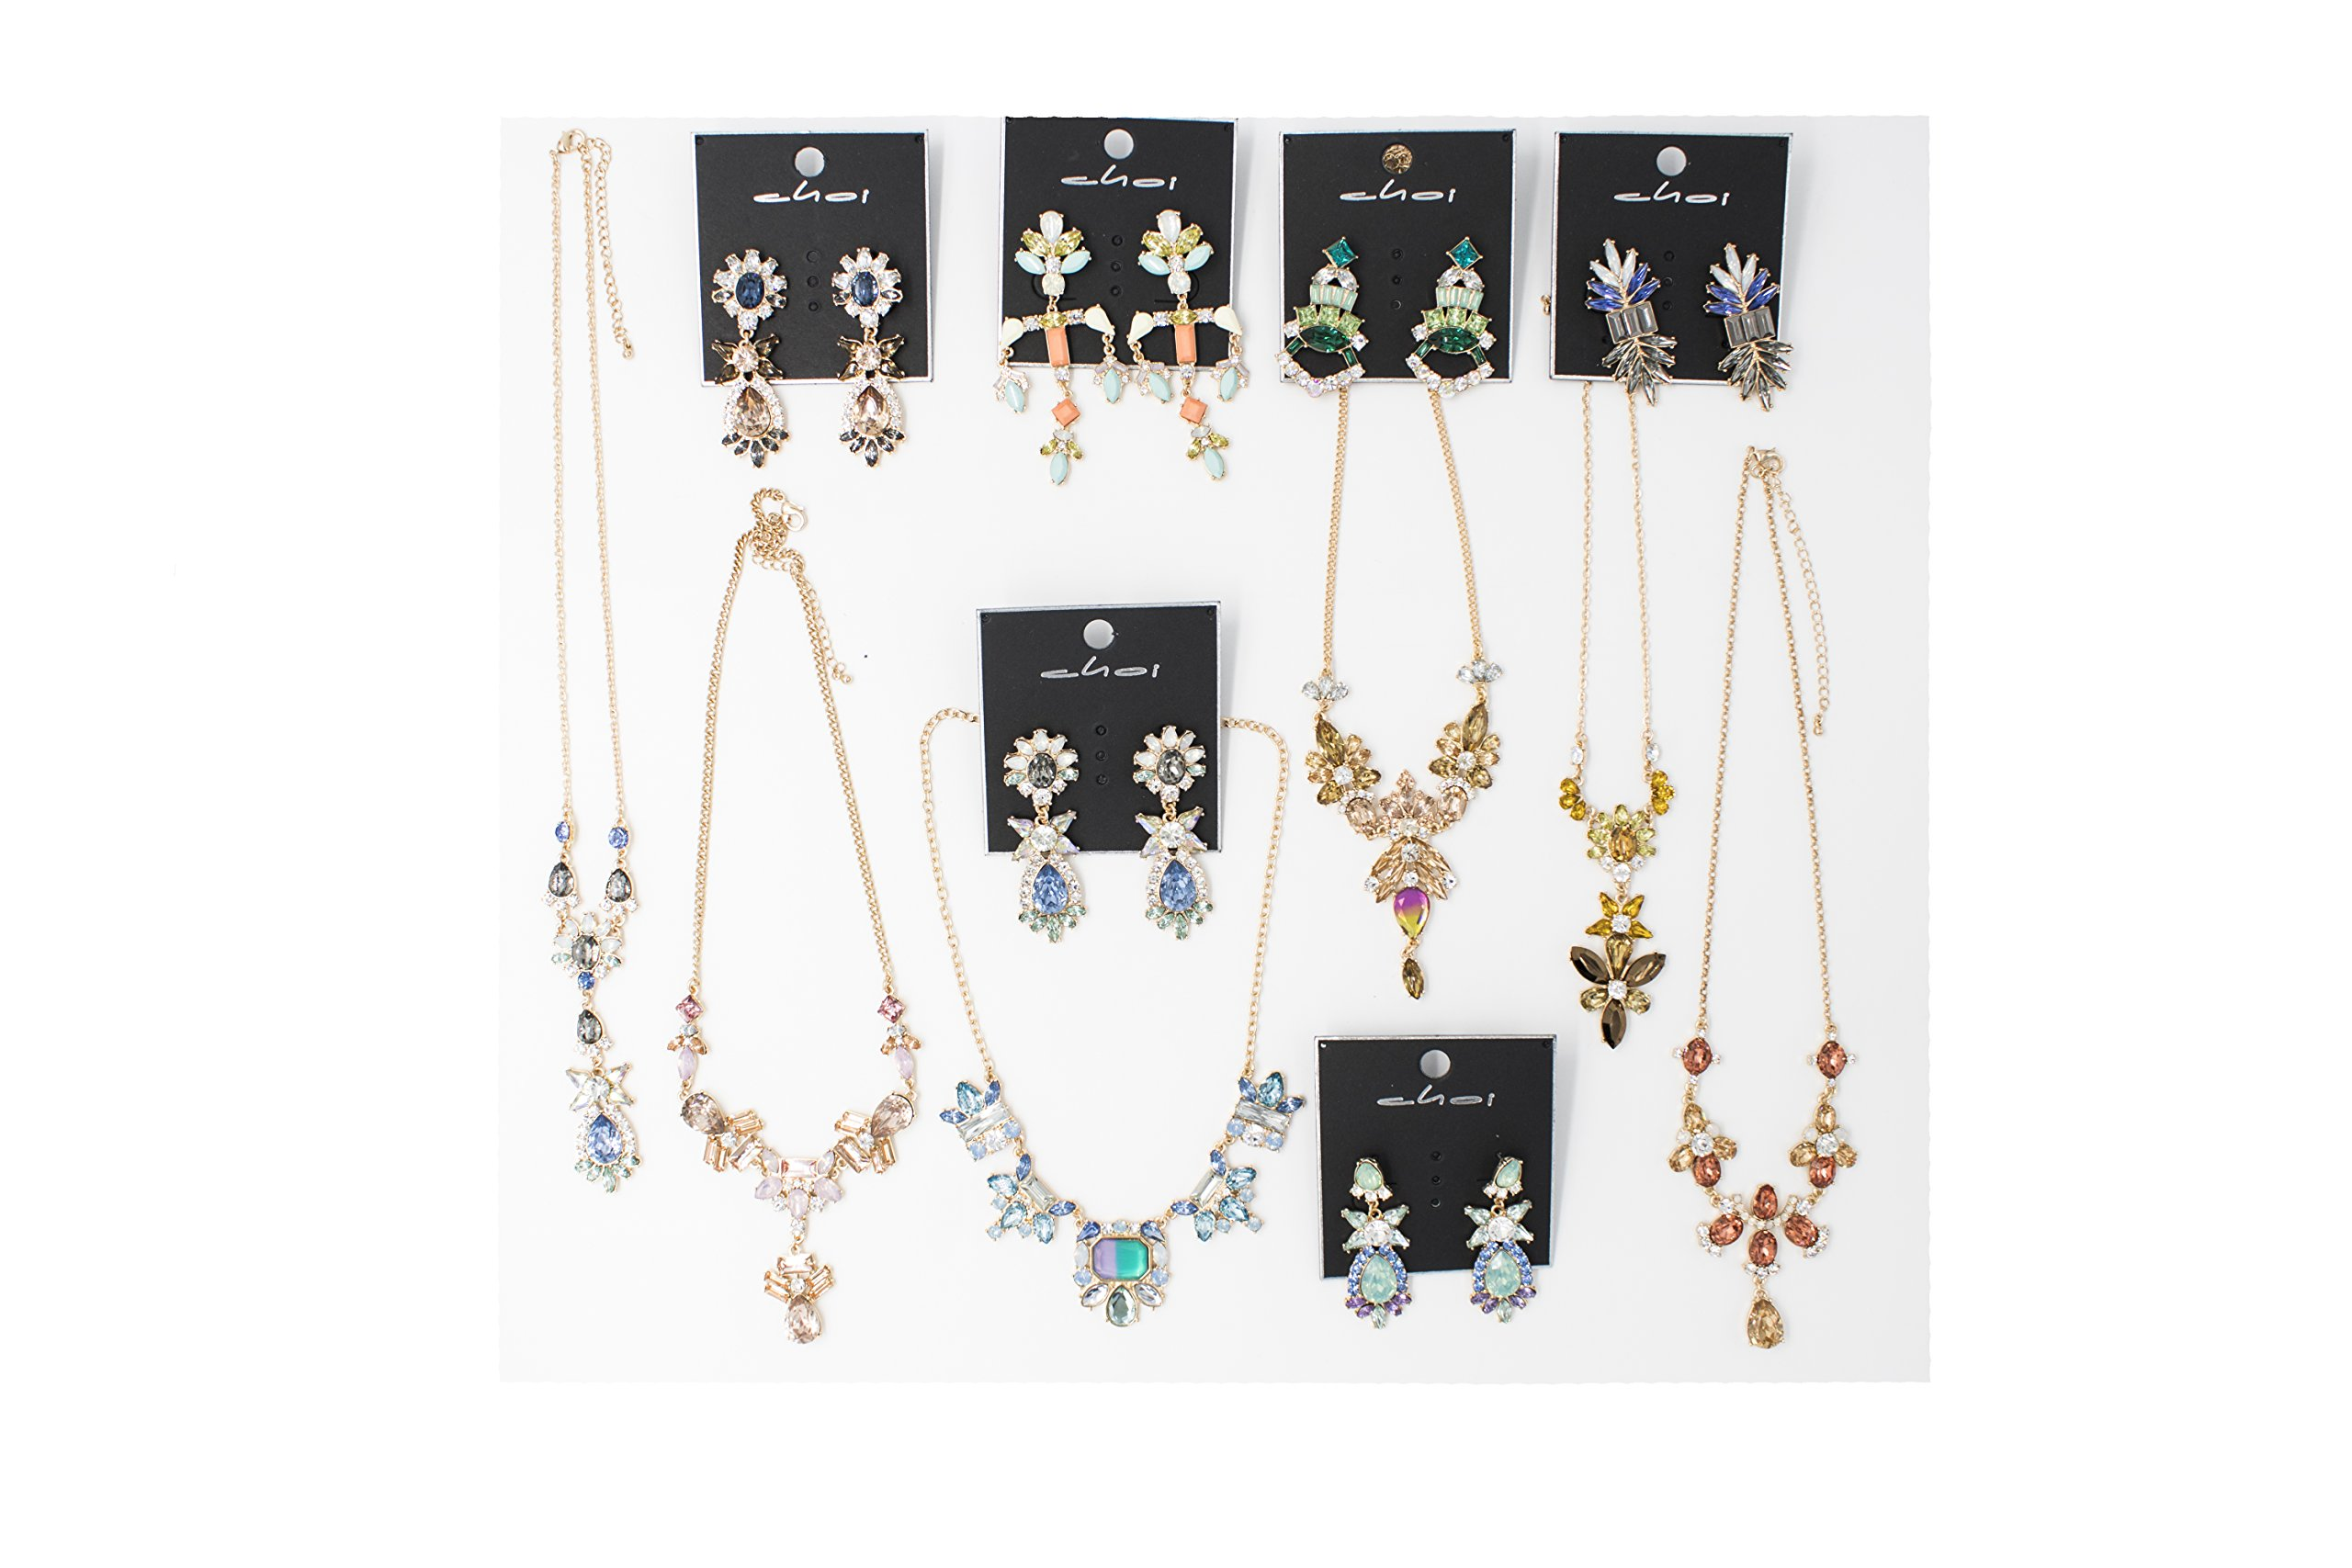 Fashion Jewelry, Gold & Silver, 100 Pieces in Bulk for Wholesale, Assorted Jewelry by Choice by Choi